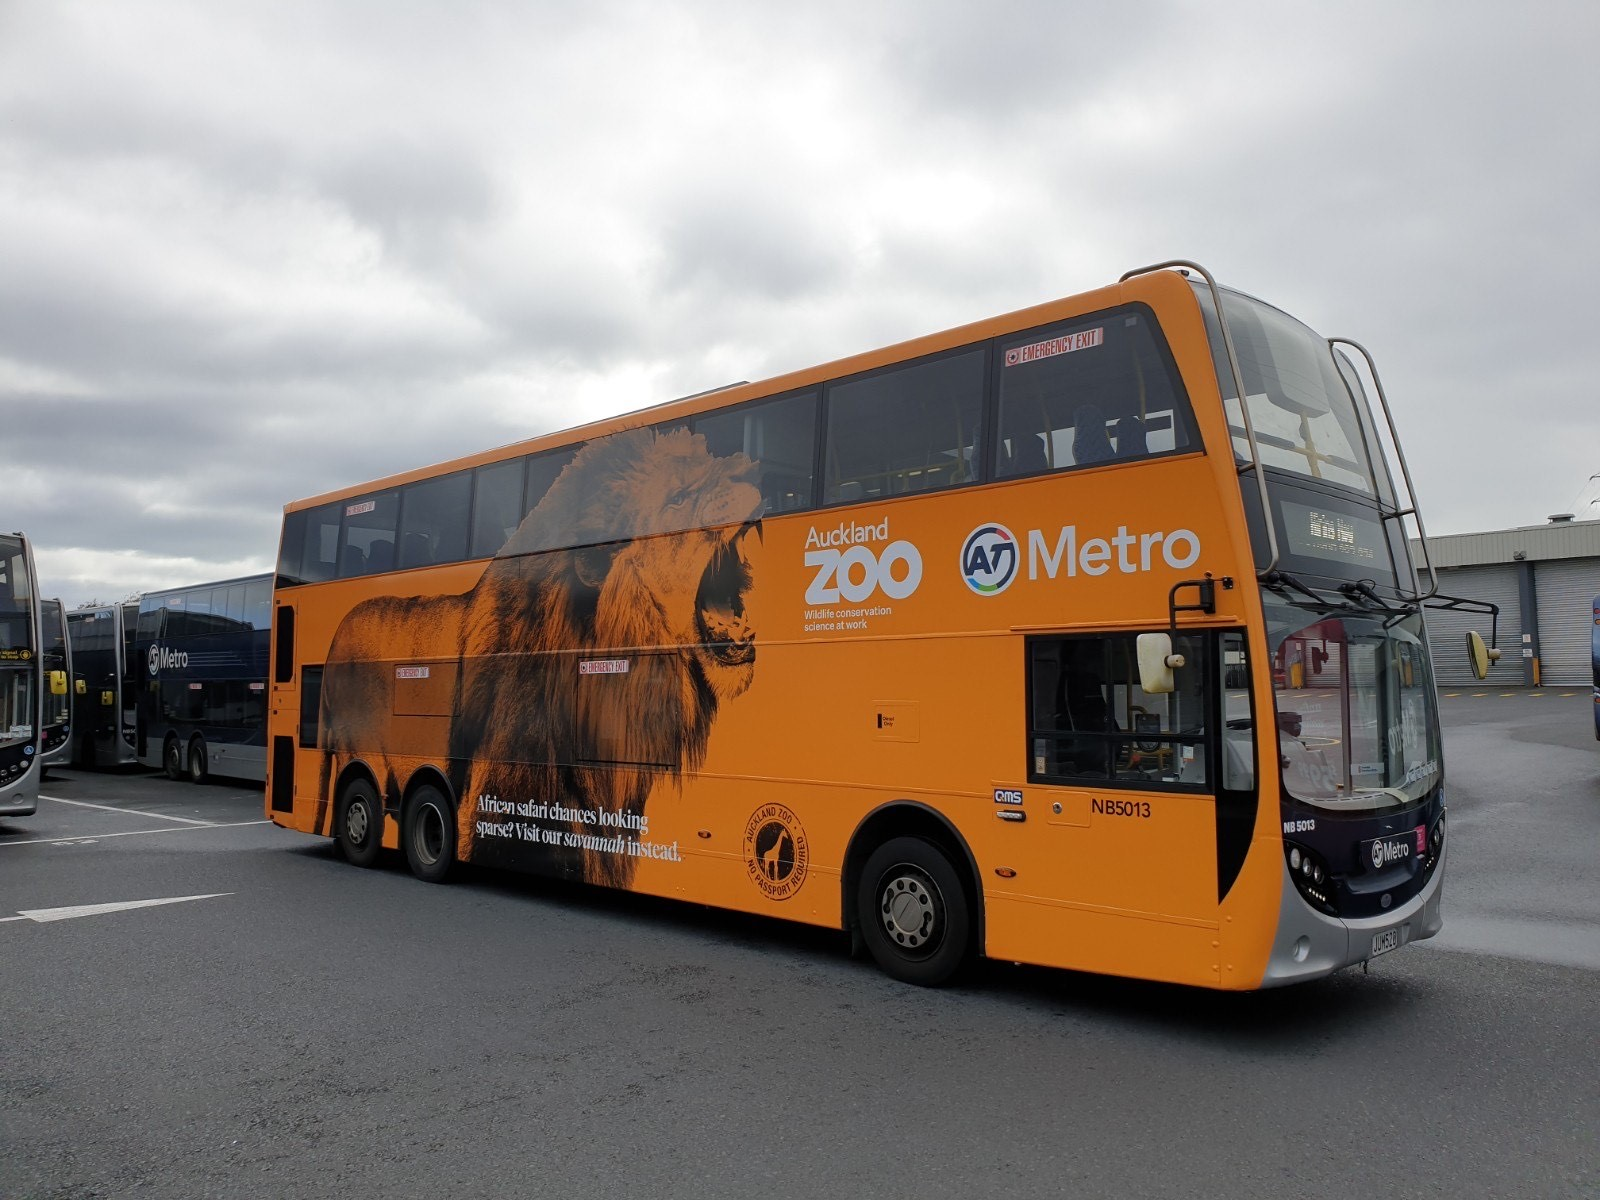 https://rfacdn.nz/zoo/assets/media/auckland-zoo-branded-at-bus.jpg